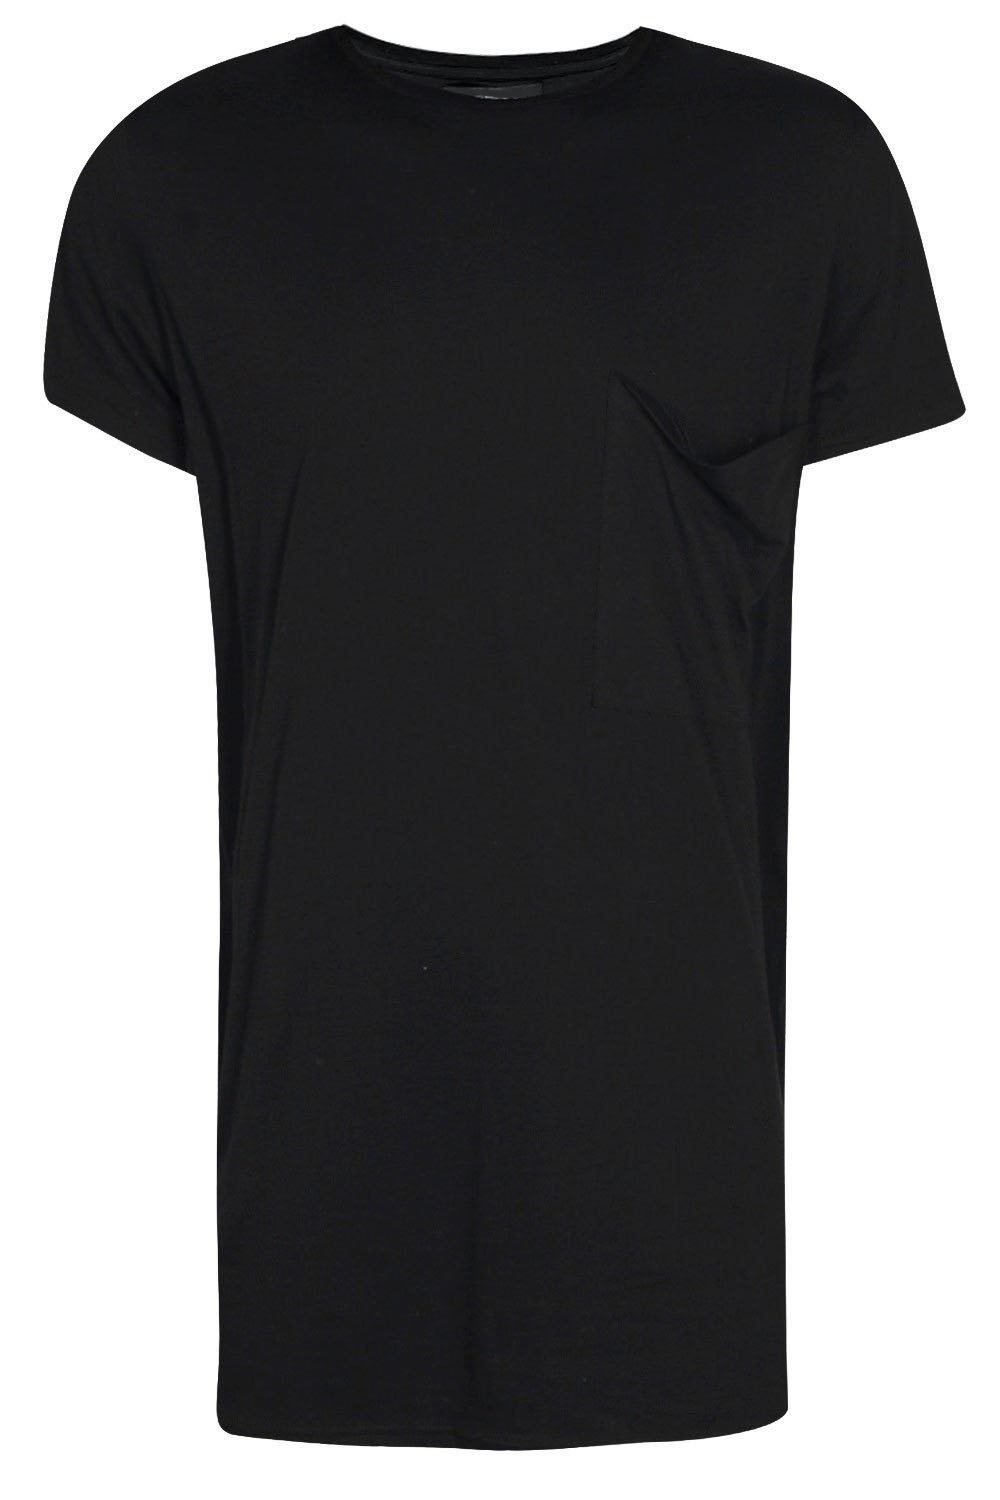 Black t shirt bulk - Black T Shirt Bulk Long Oversized T Shirt Black T Shirts Bulk 100 Cotton T